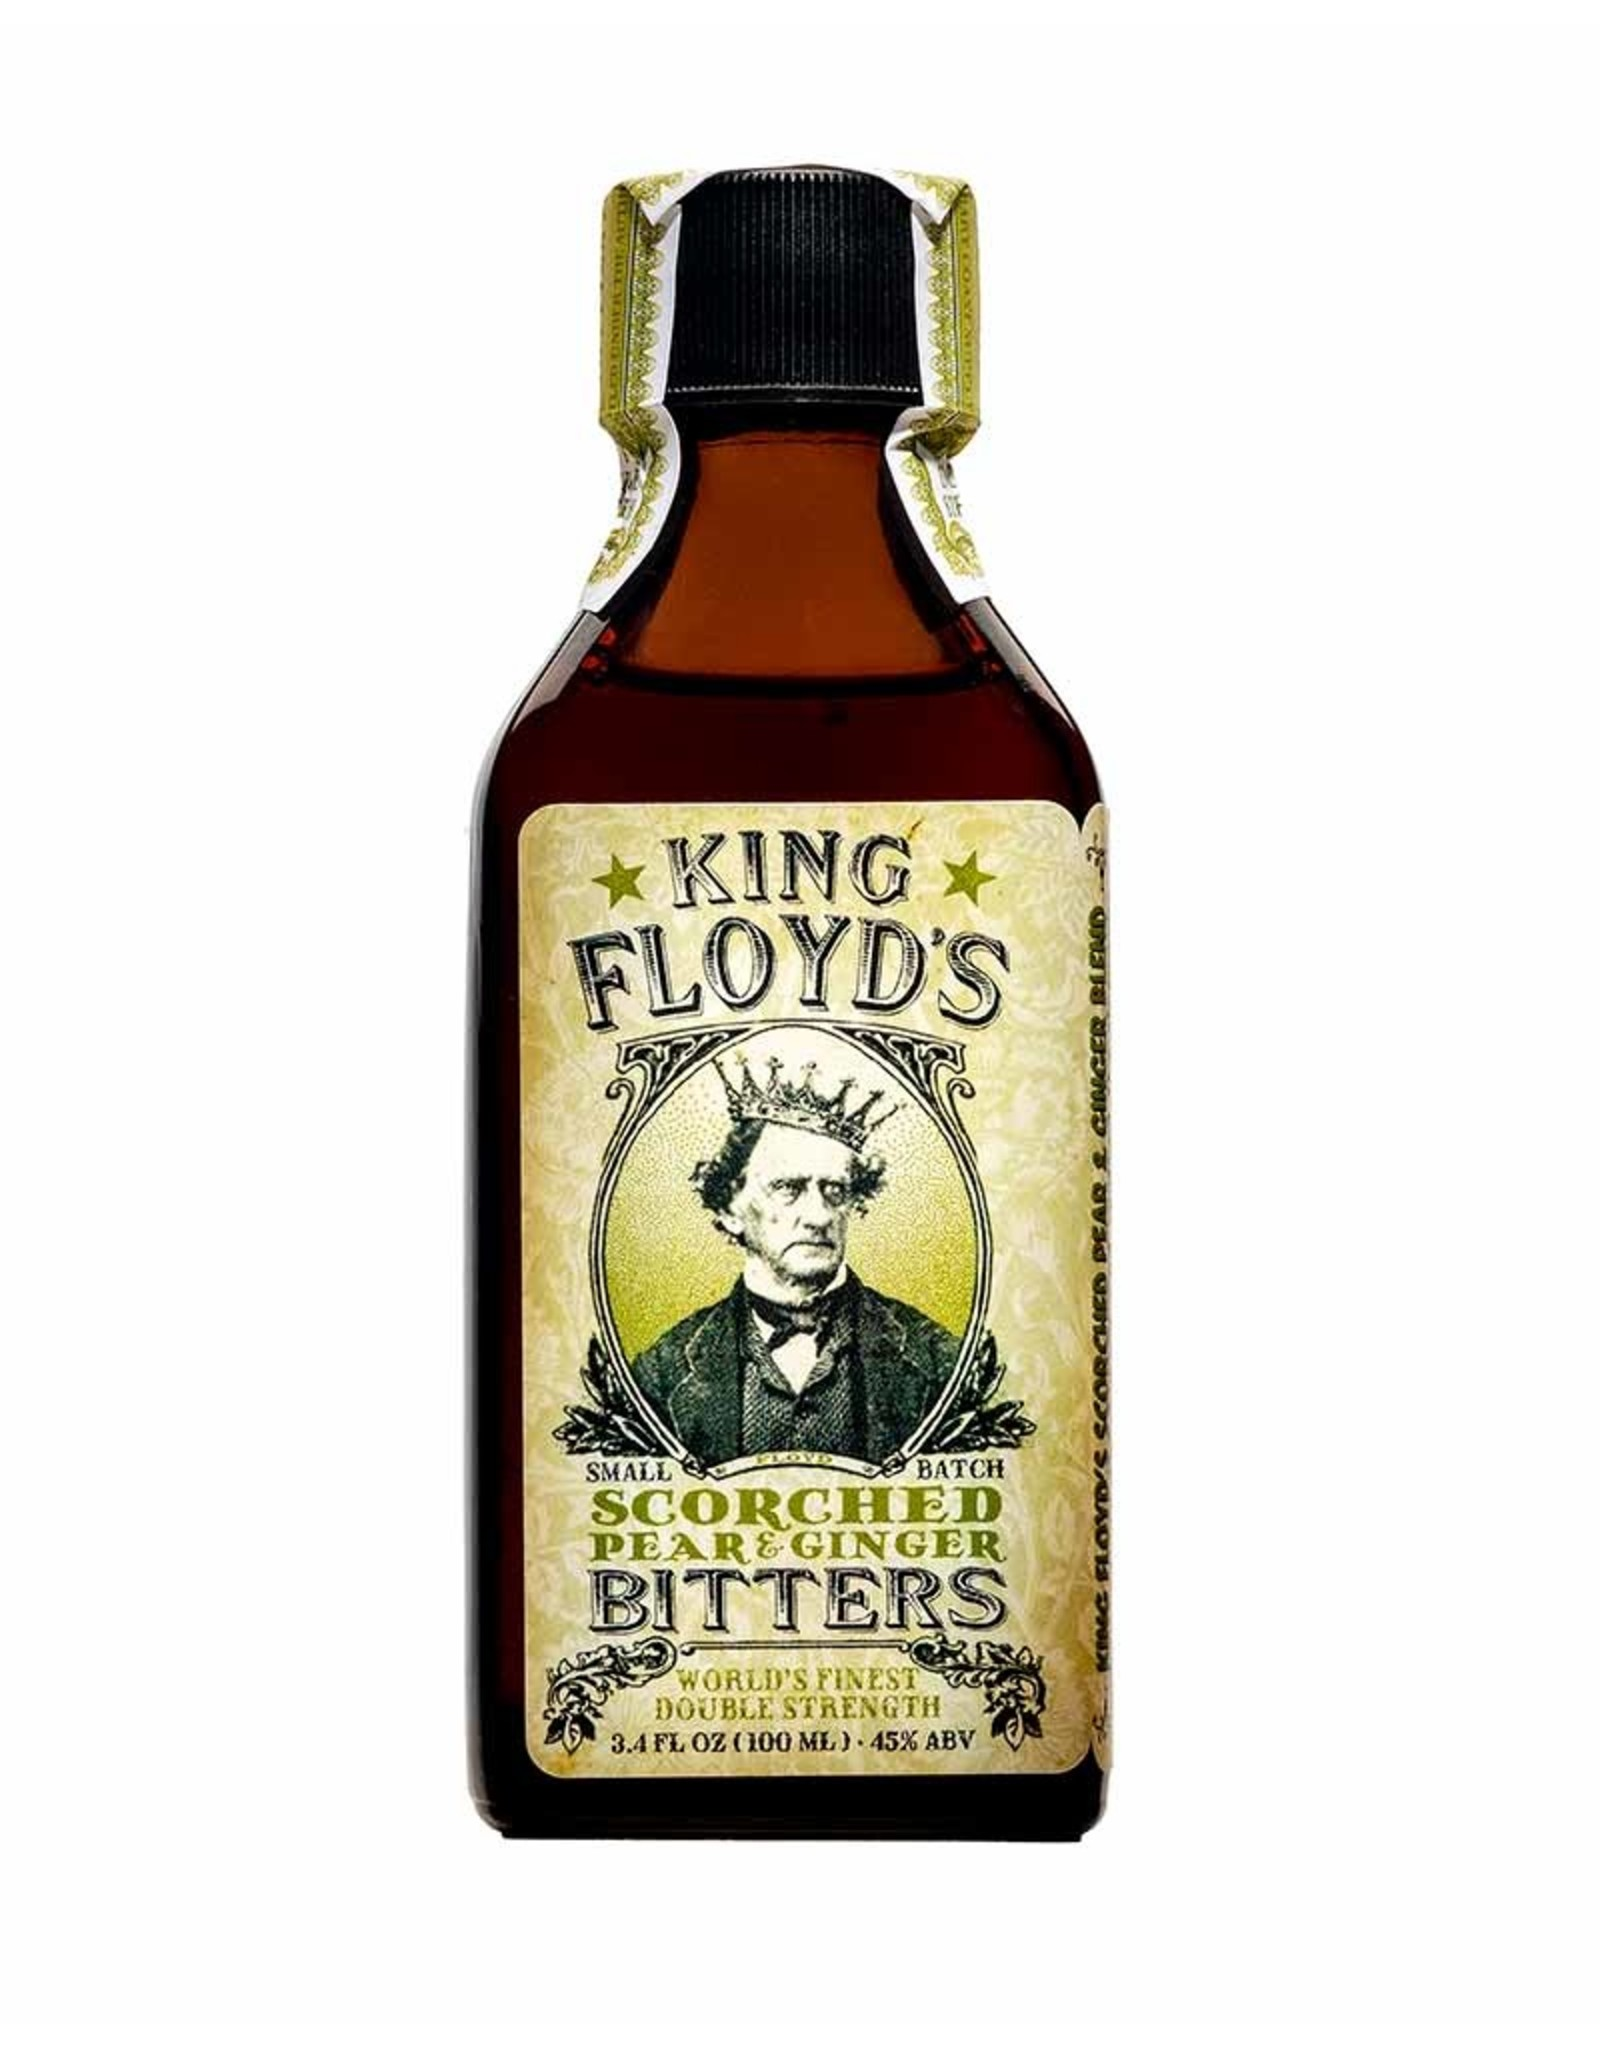 King Floyds King Floyd's Scorched Pear & Ginger Bitters